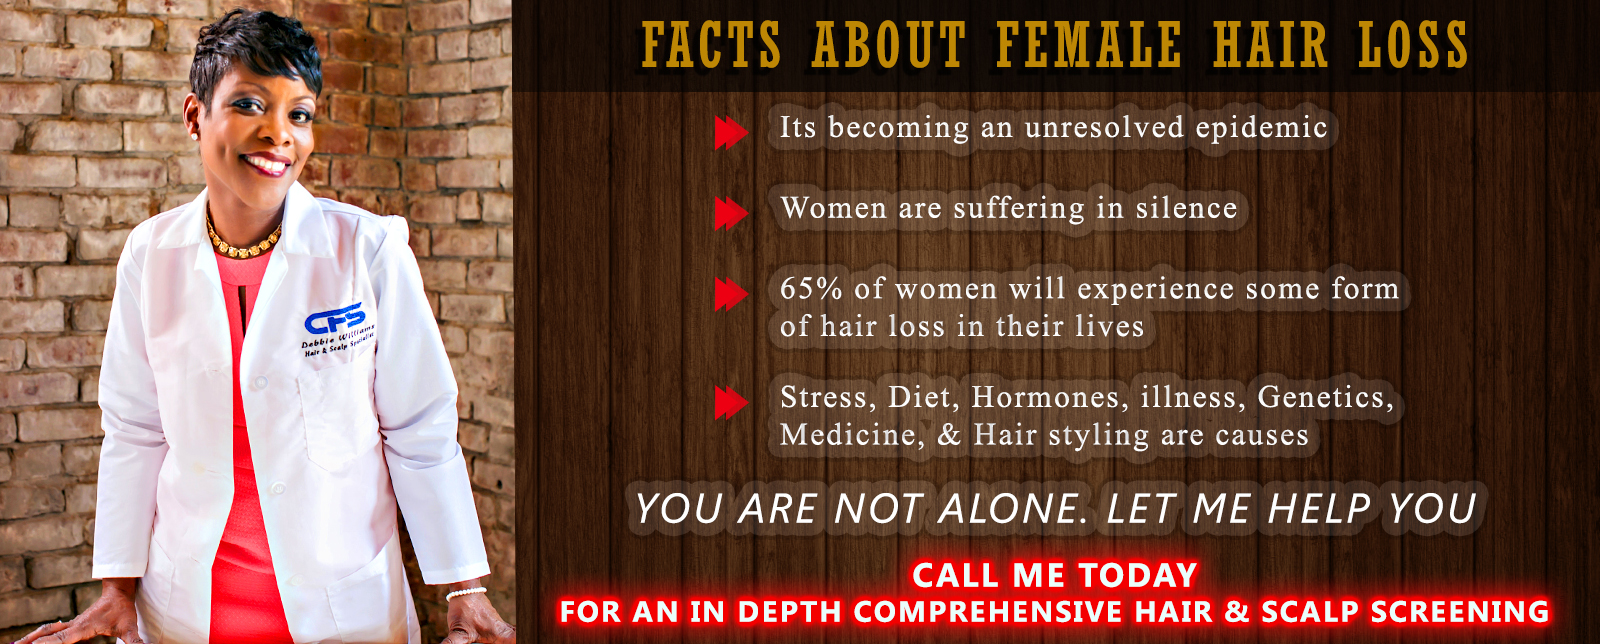 Facts-About-Female-Hair-Loss-Banner-1600x644-V1